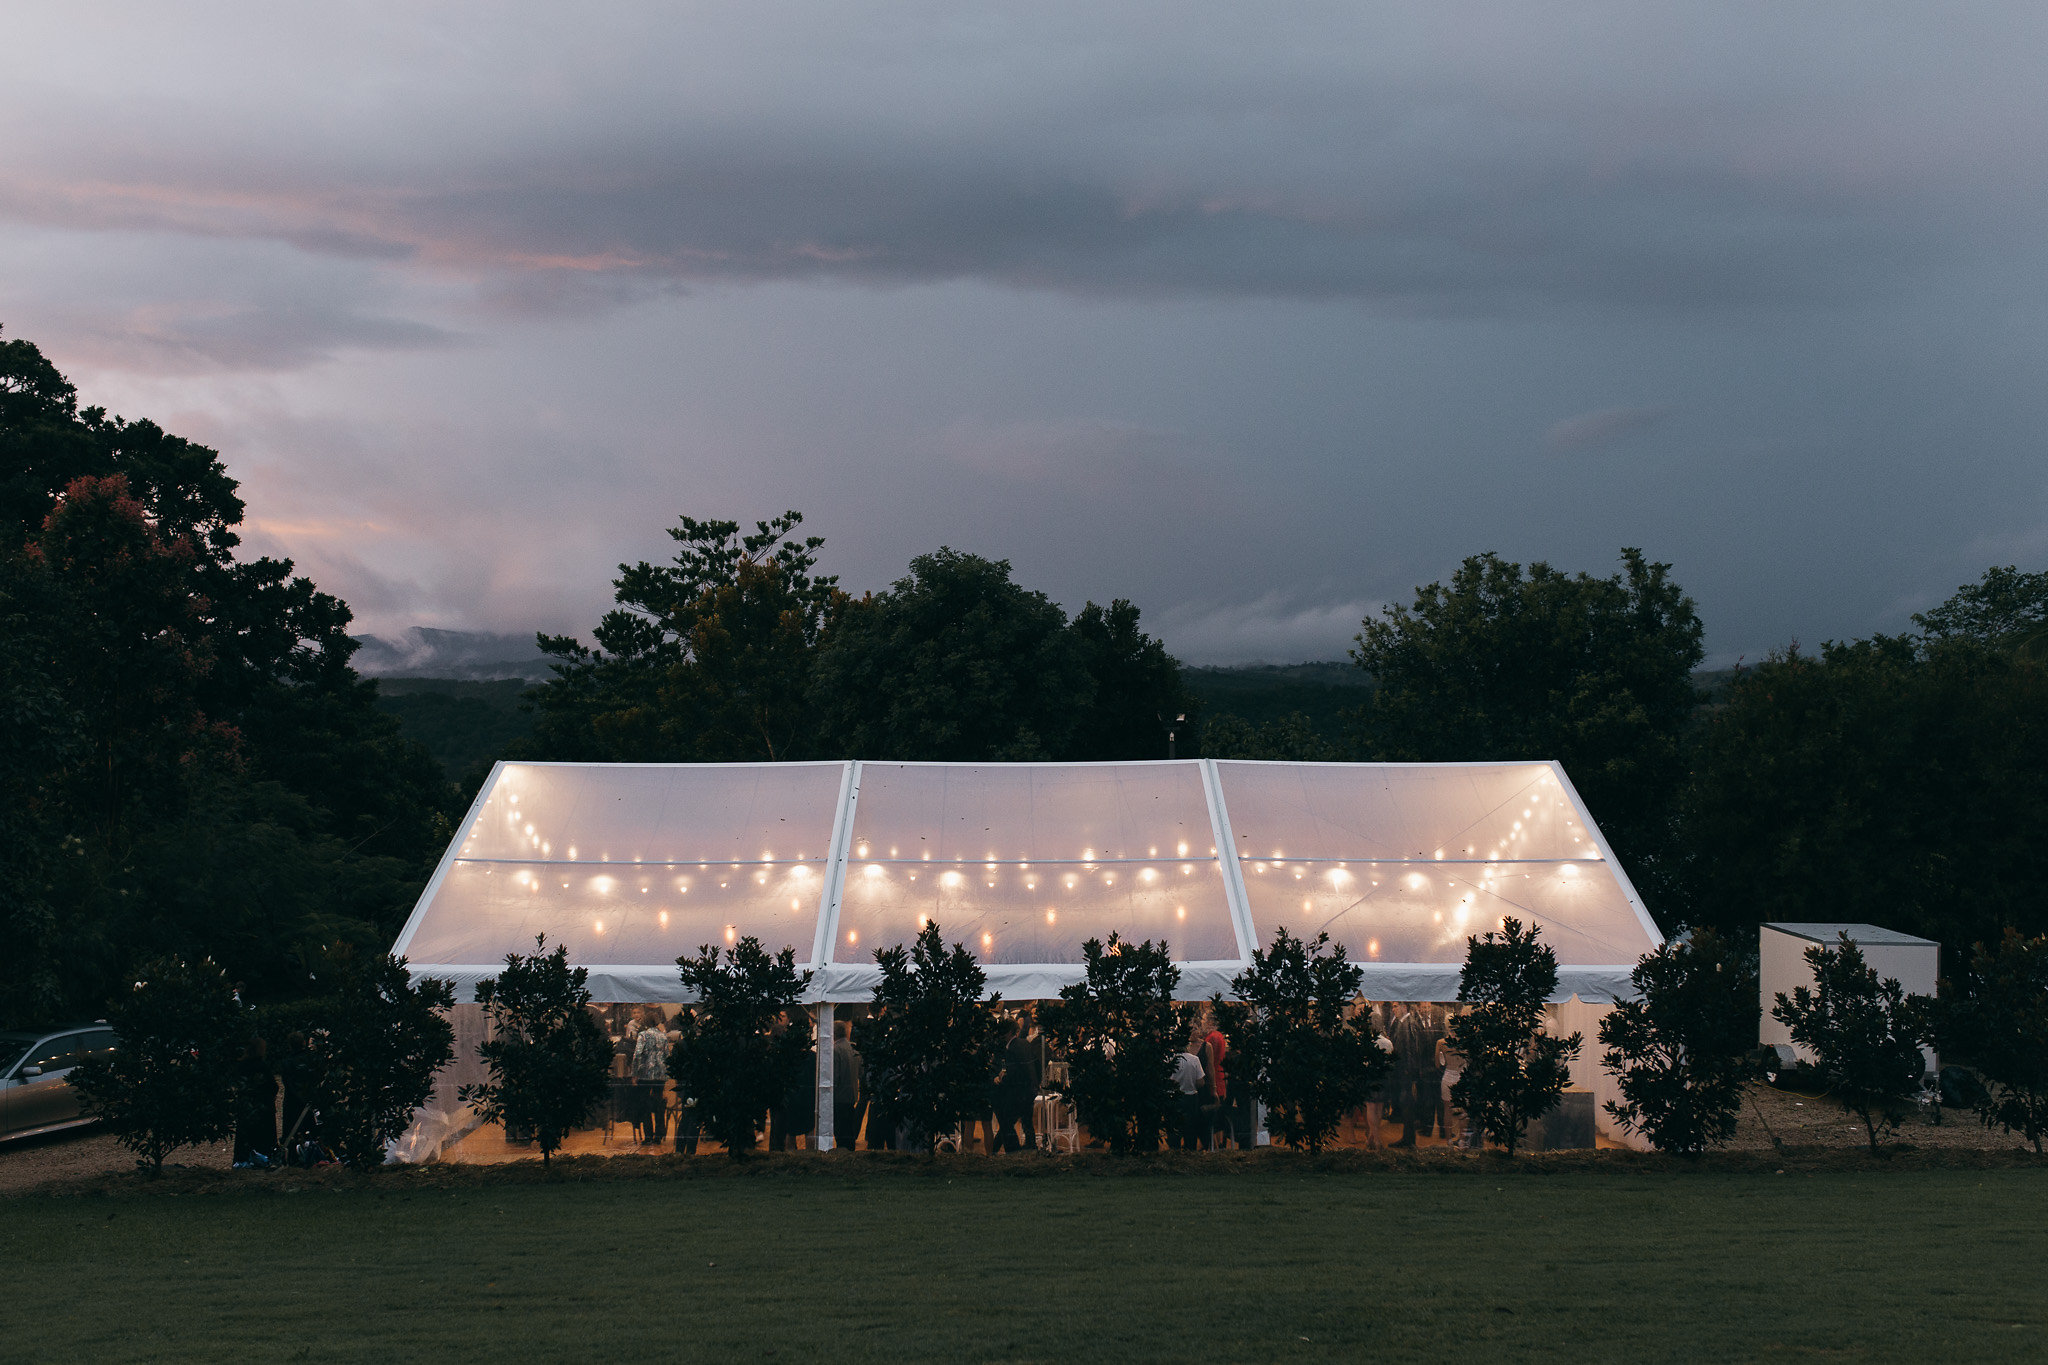 10m x 15m Clear Marquee with Festoon Lights